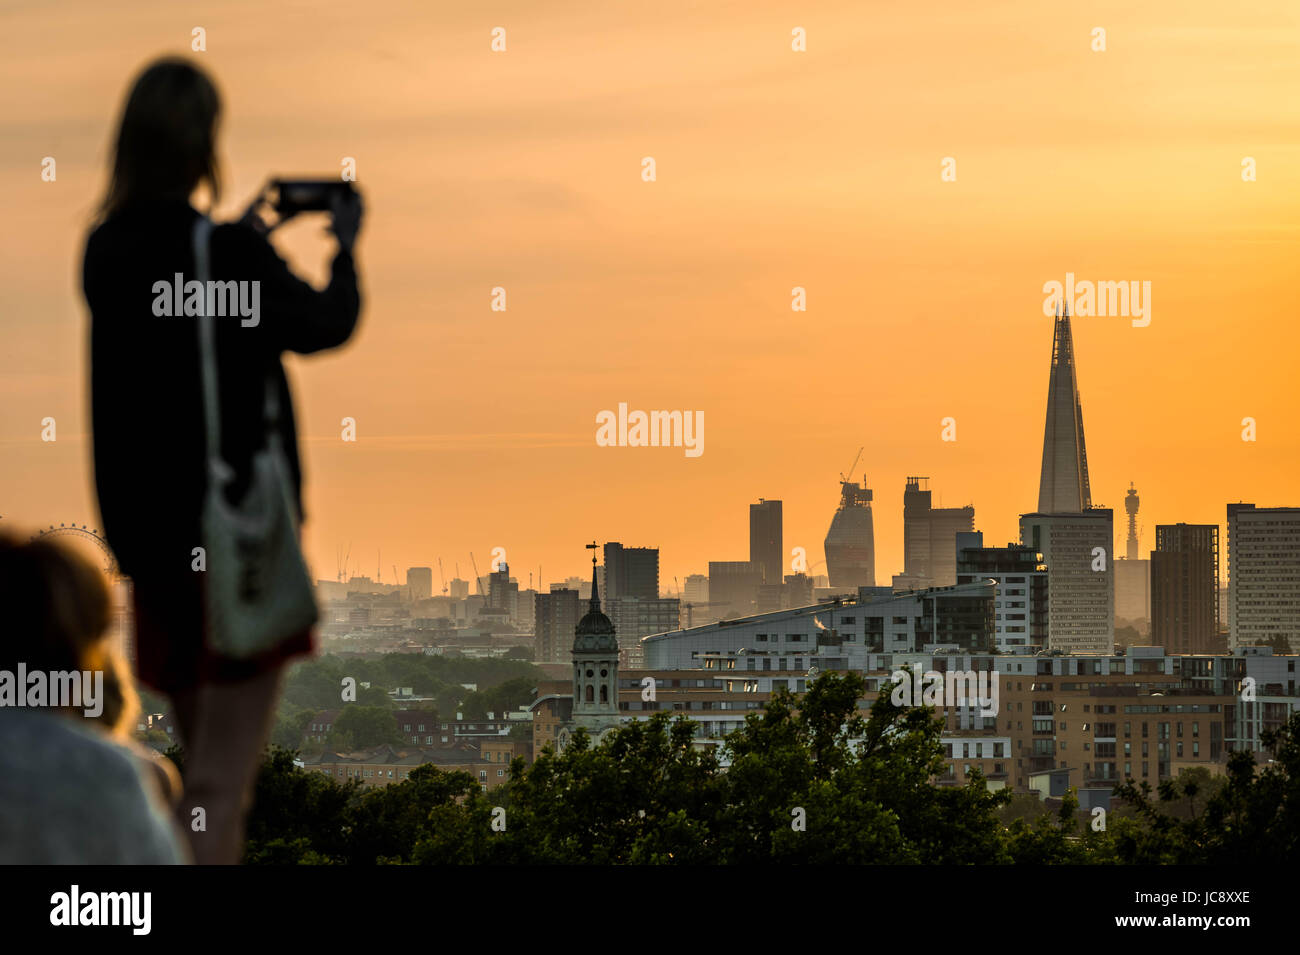 London, UK. 14th June, 2017. UK Weather: Locals and tourists enjoy the evening sunset over the city seen from Greenwich - Stock Image